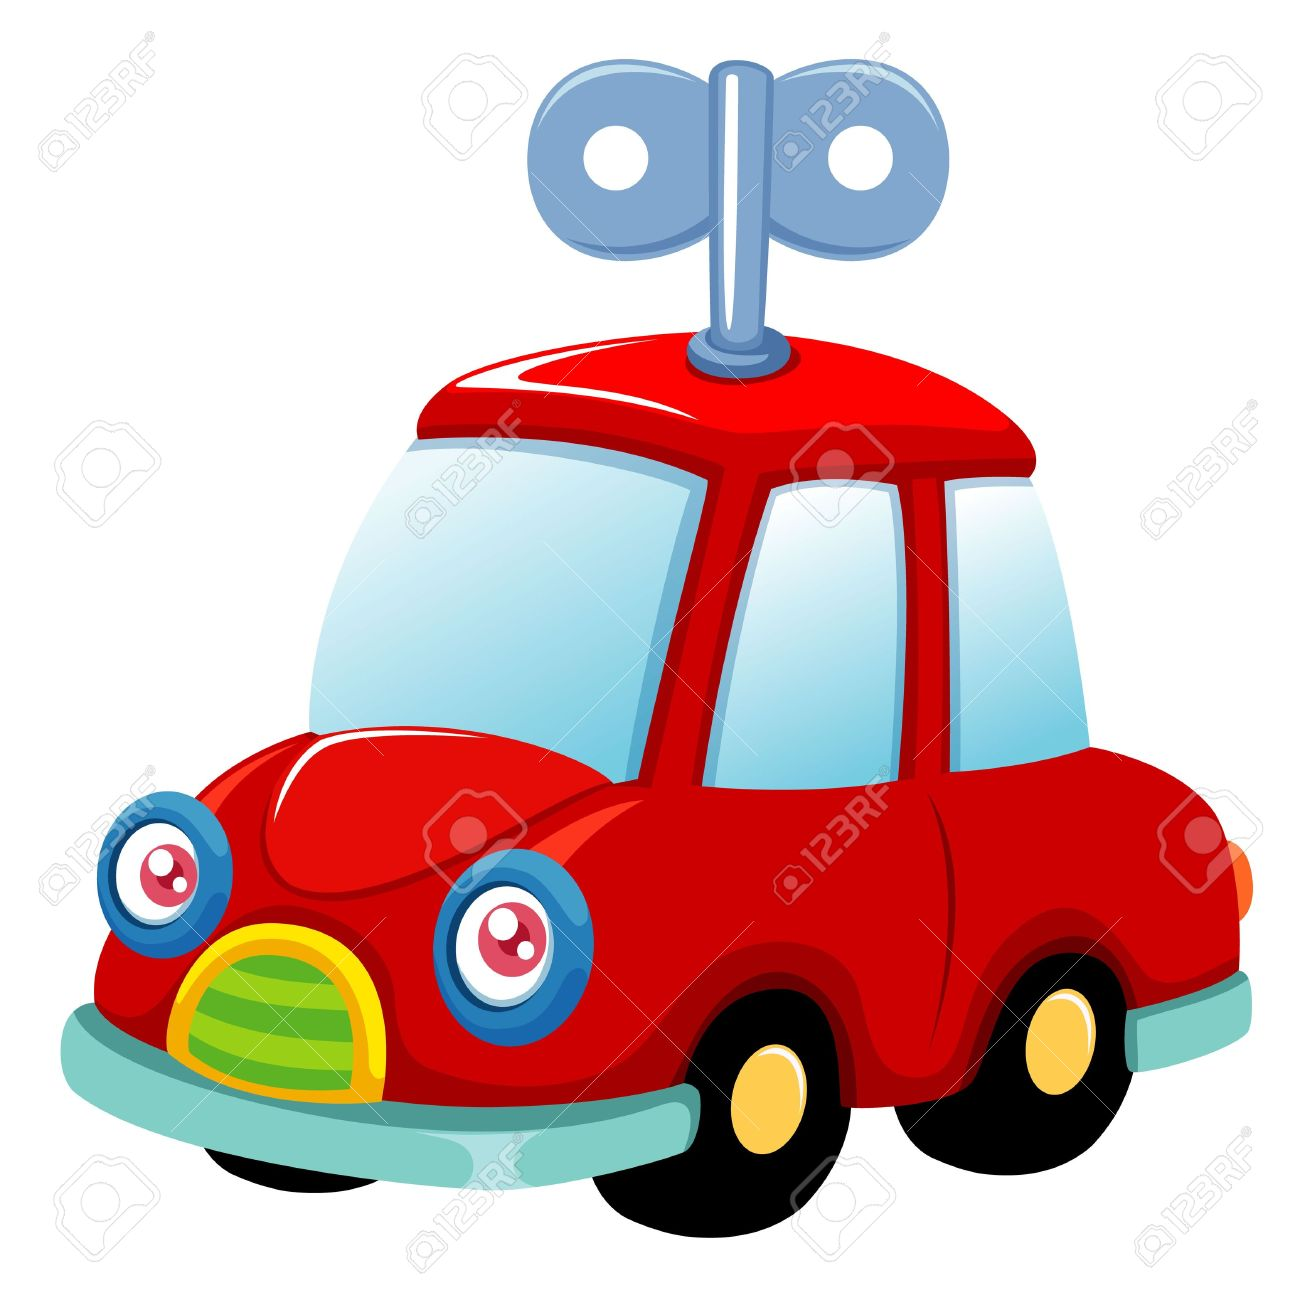 Red toy car clipart.